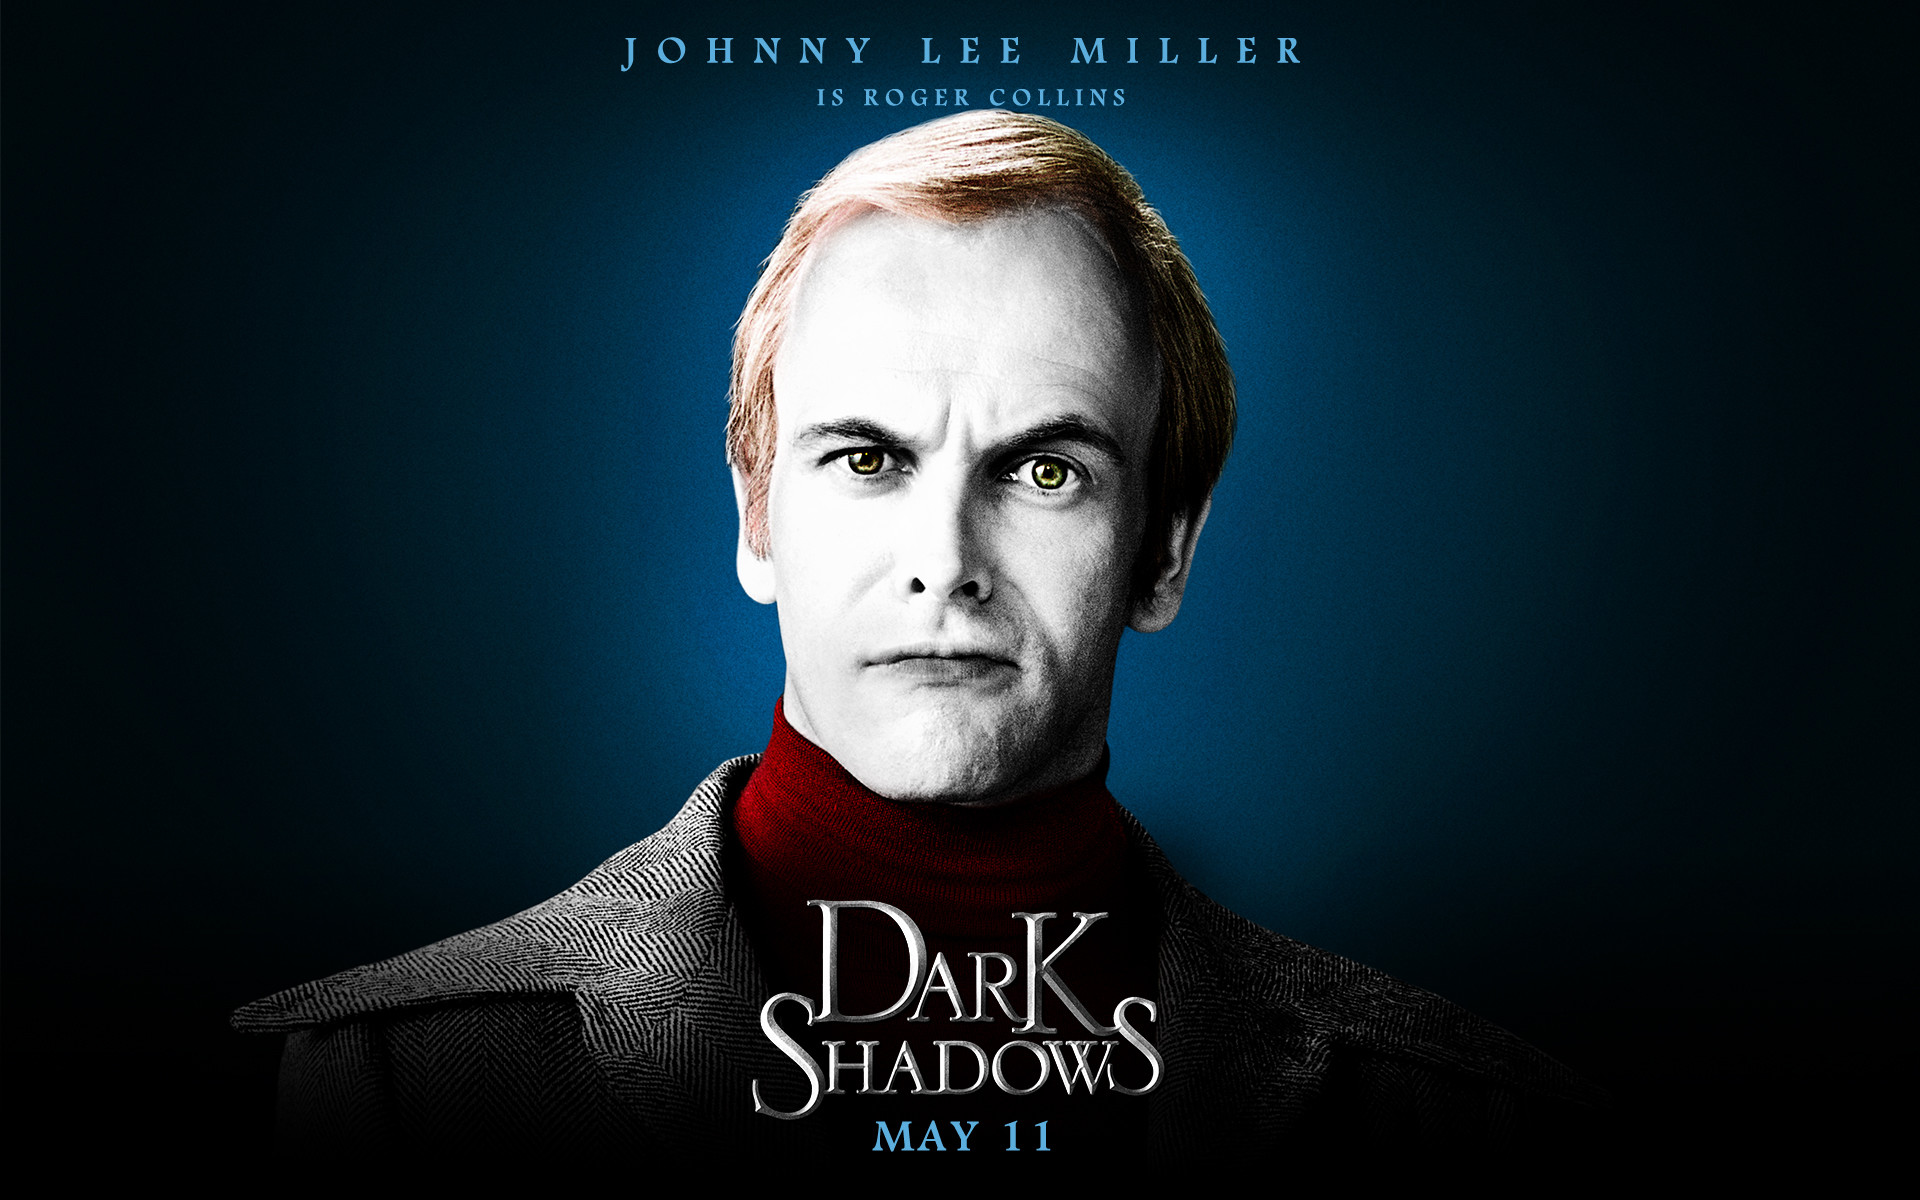 1920x1200 Dark Shadows wallpapers 1920×1200 – Johhny Lee Miller as Roger Collins